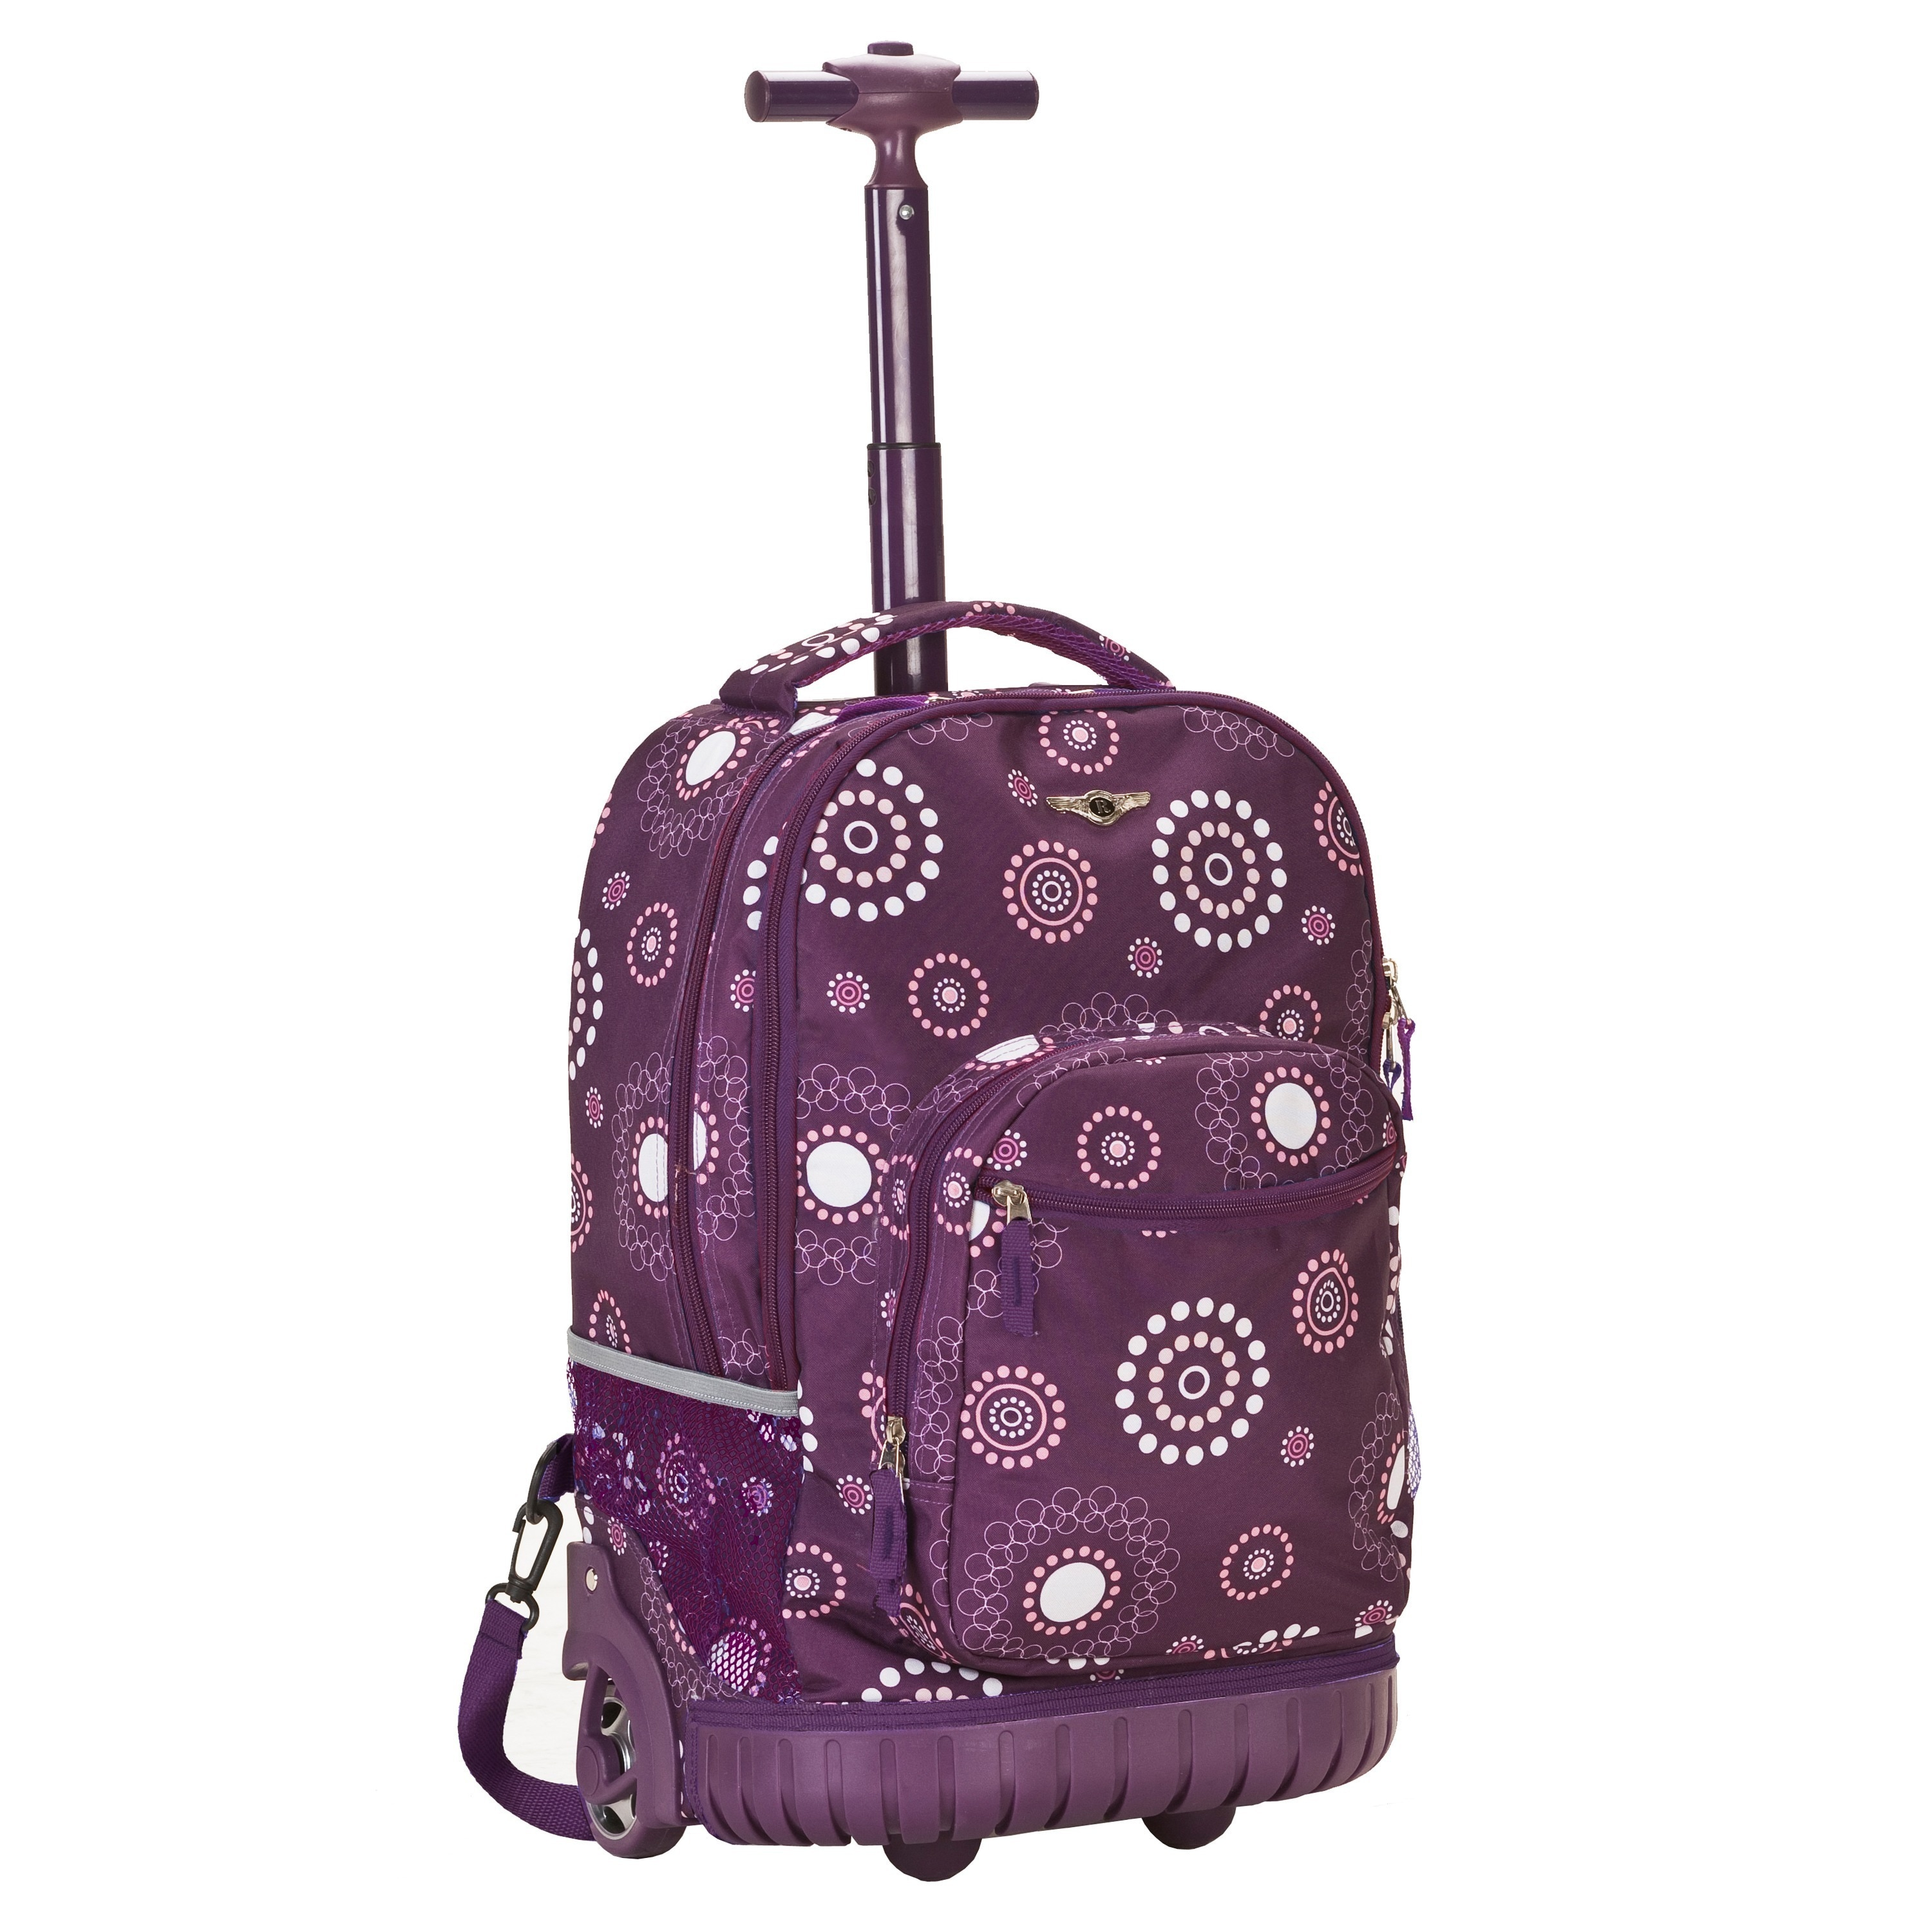 Rockland Deluxe Purple Pearl 18-inch Rolling Laptop Backp...